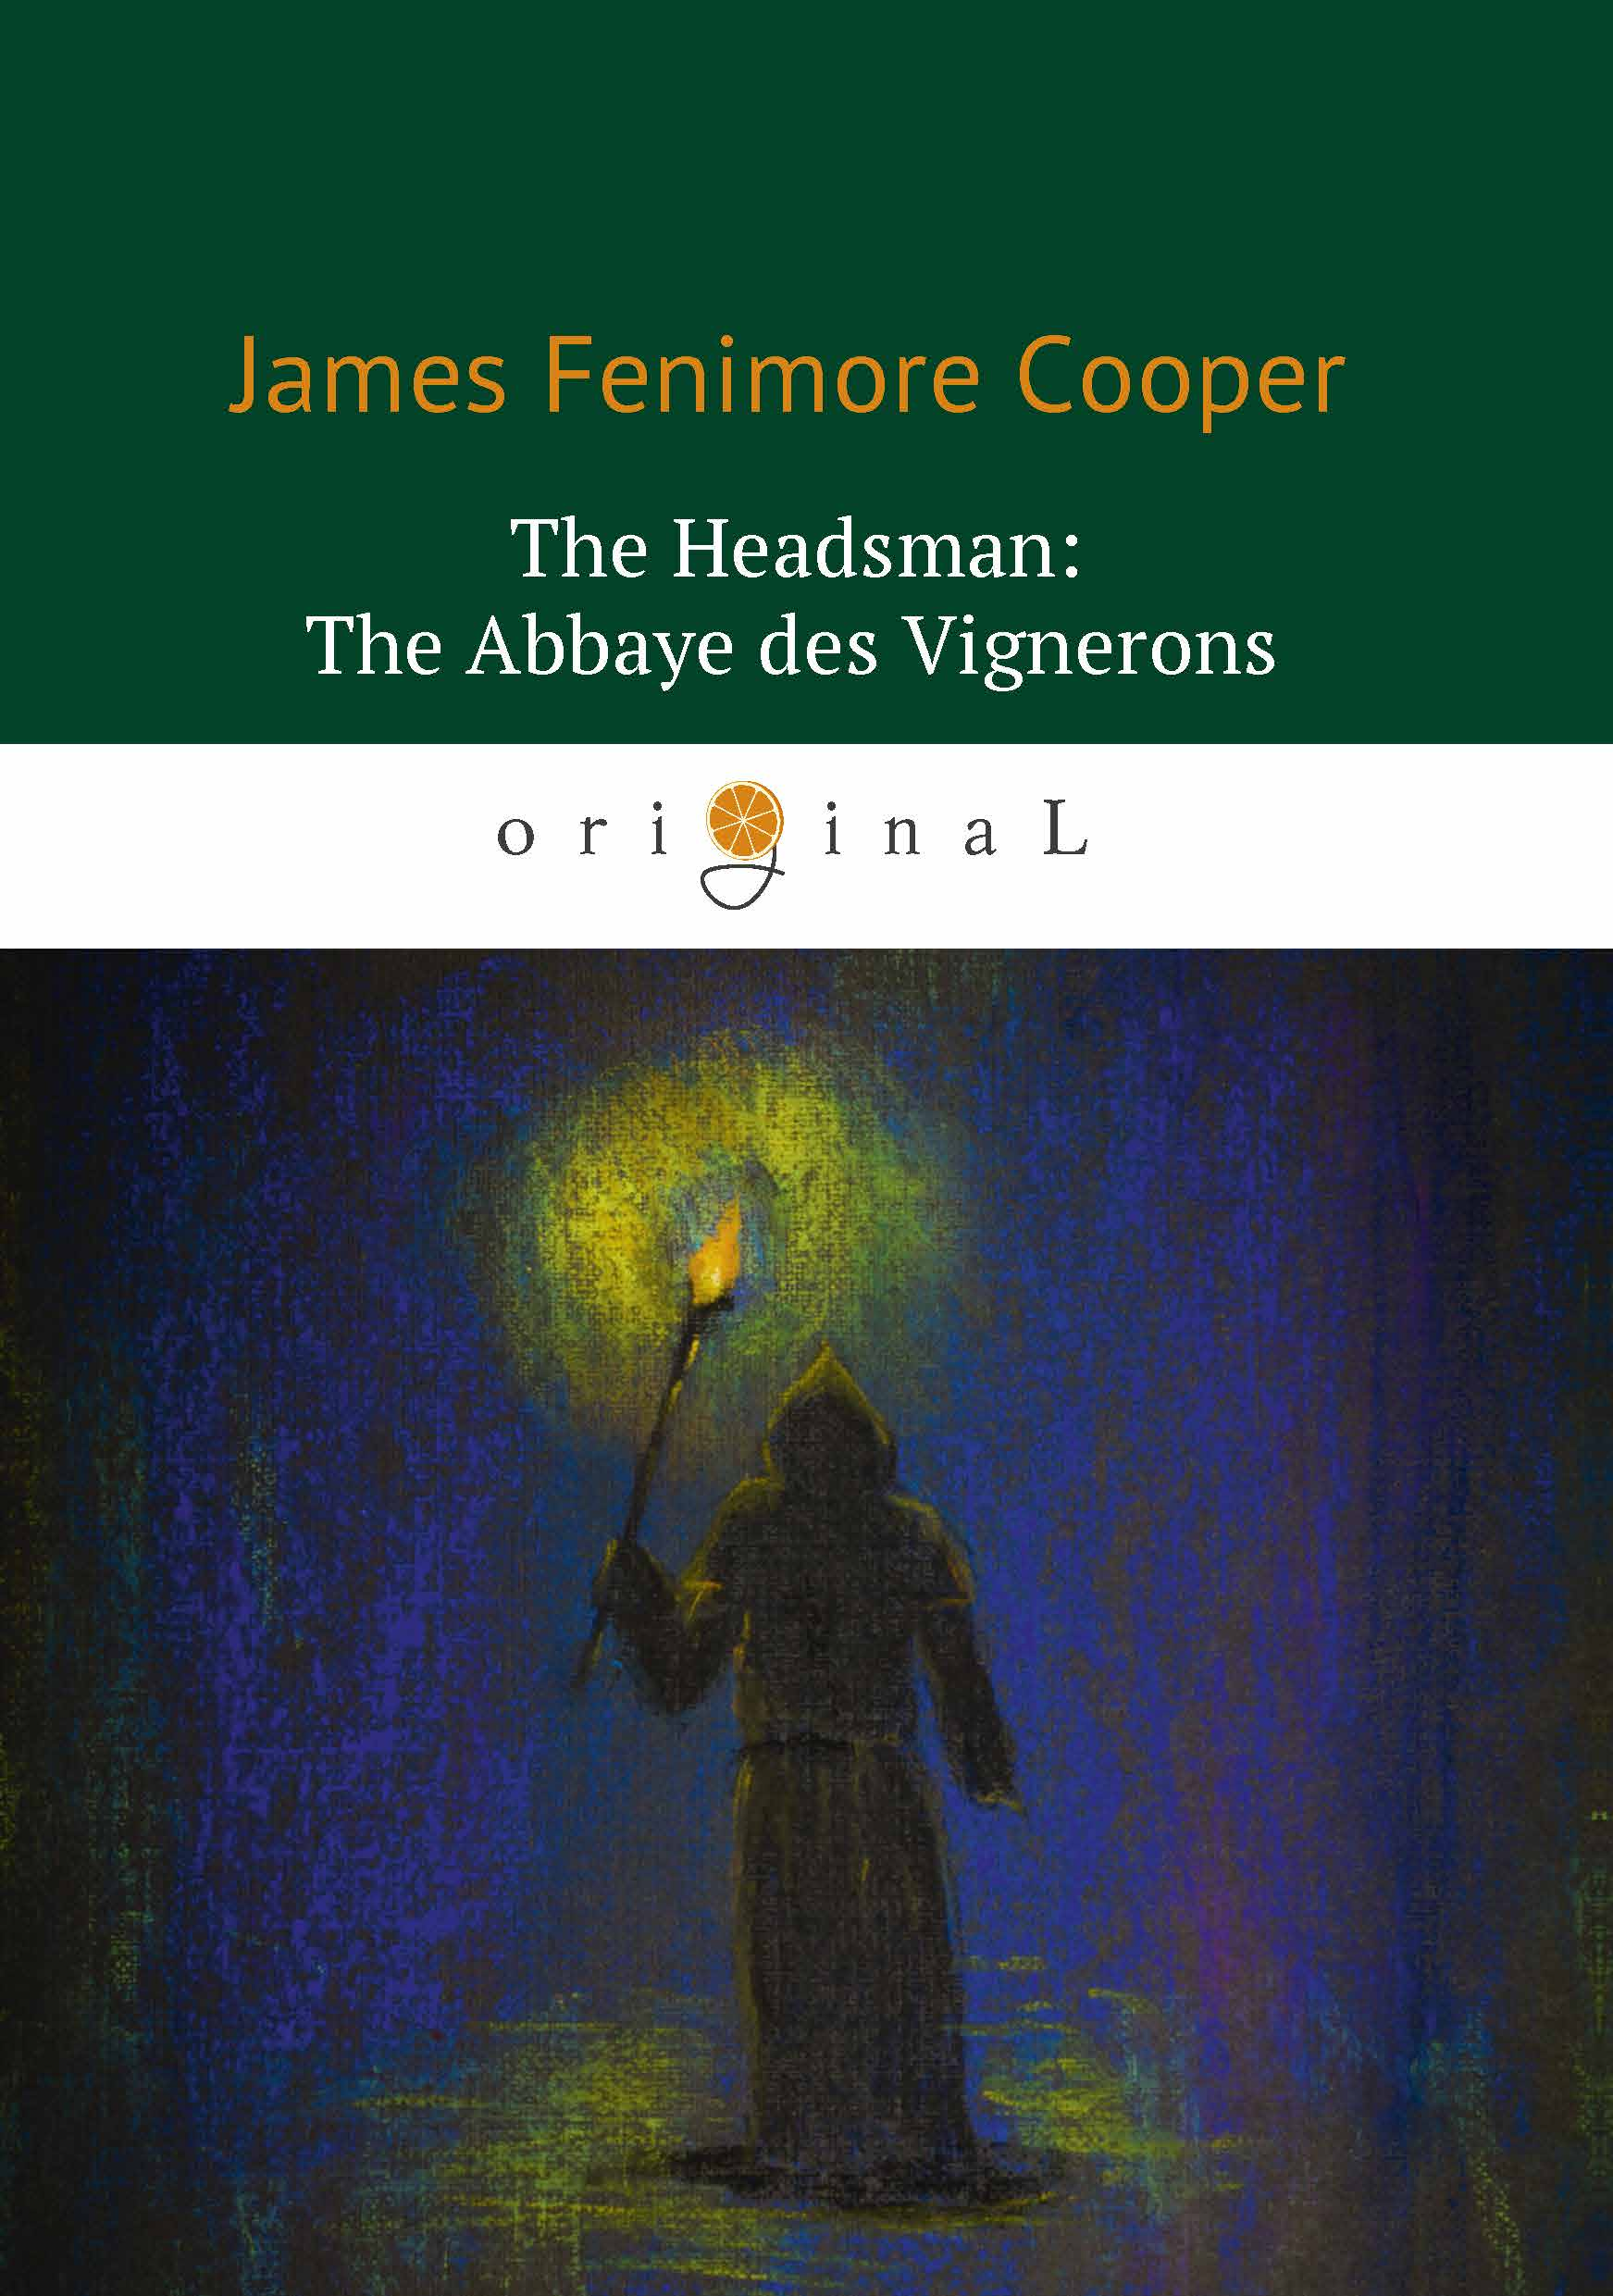 James Fenimore Cooper The Headsman: The Abbaye des Vignerons / Палач, или Аббатство виноградарей ethiopia s commitment to the trips agreement